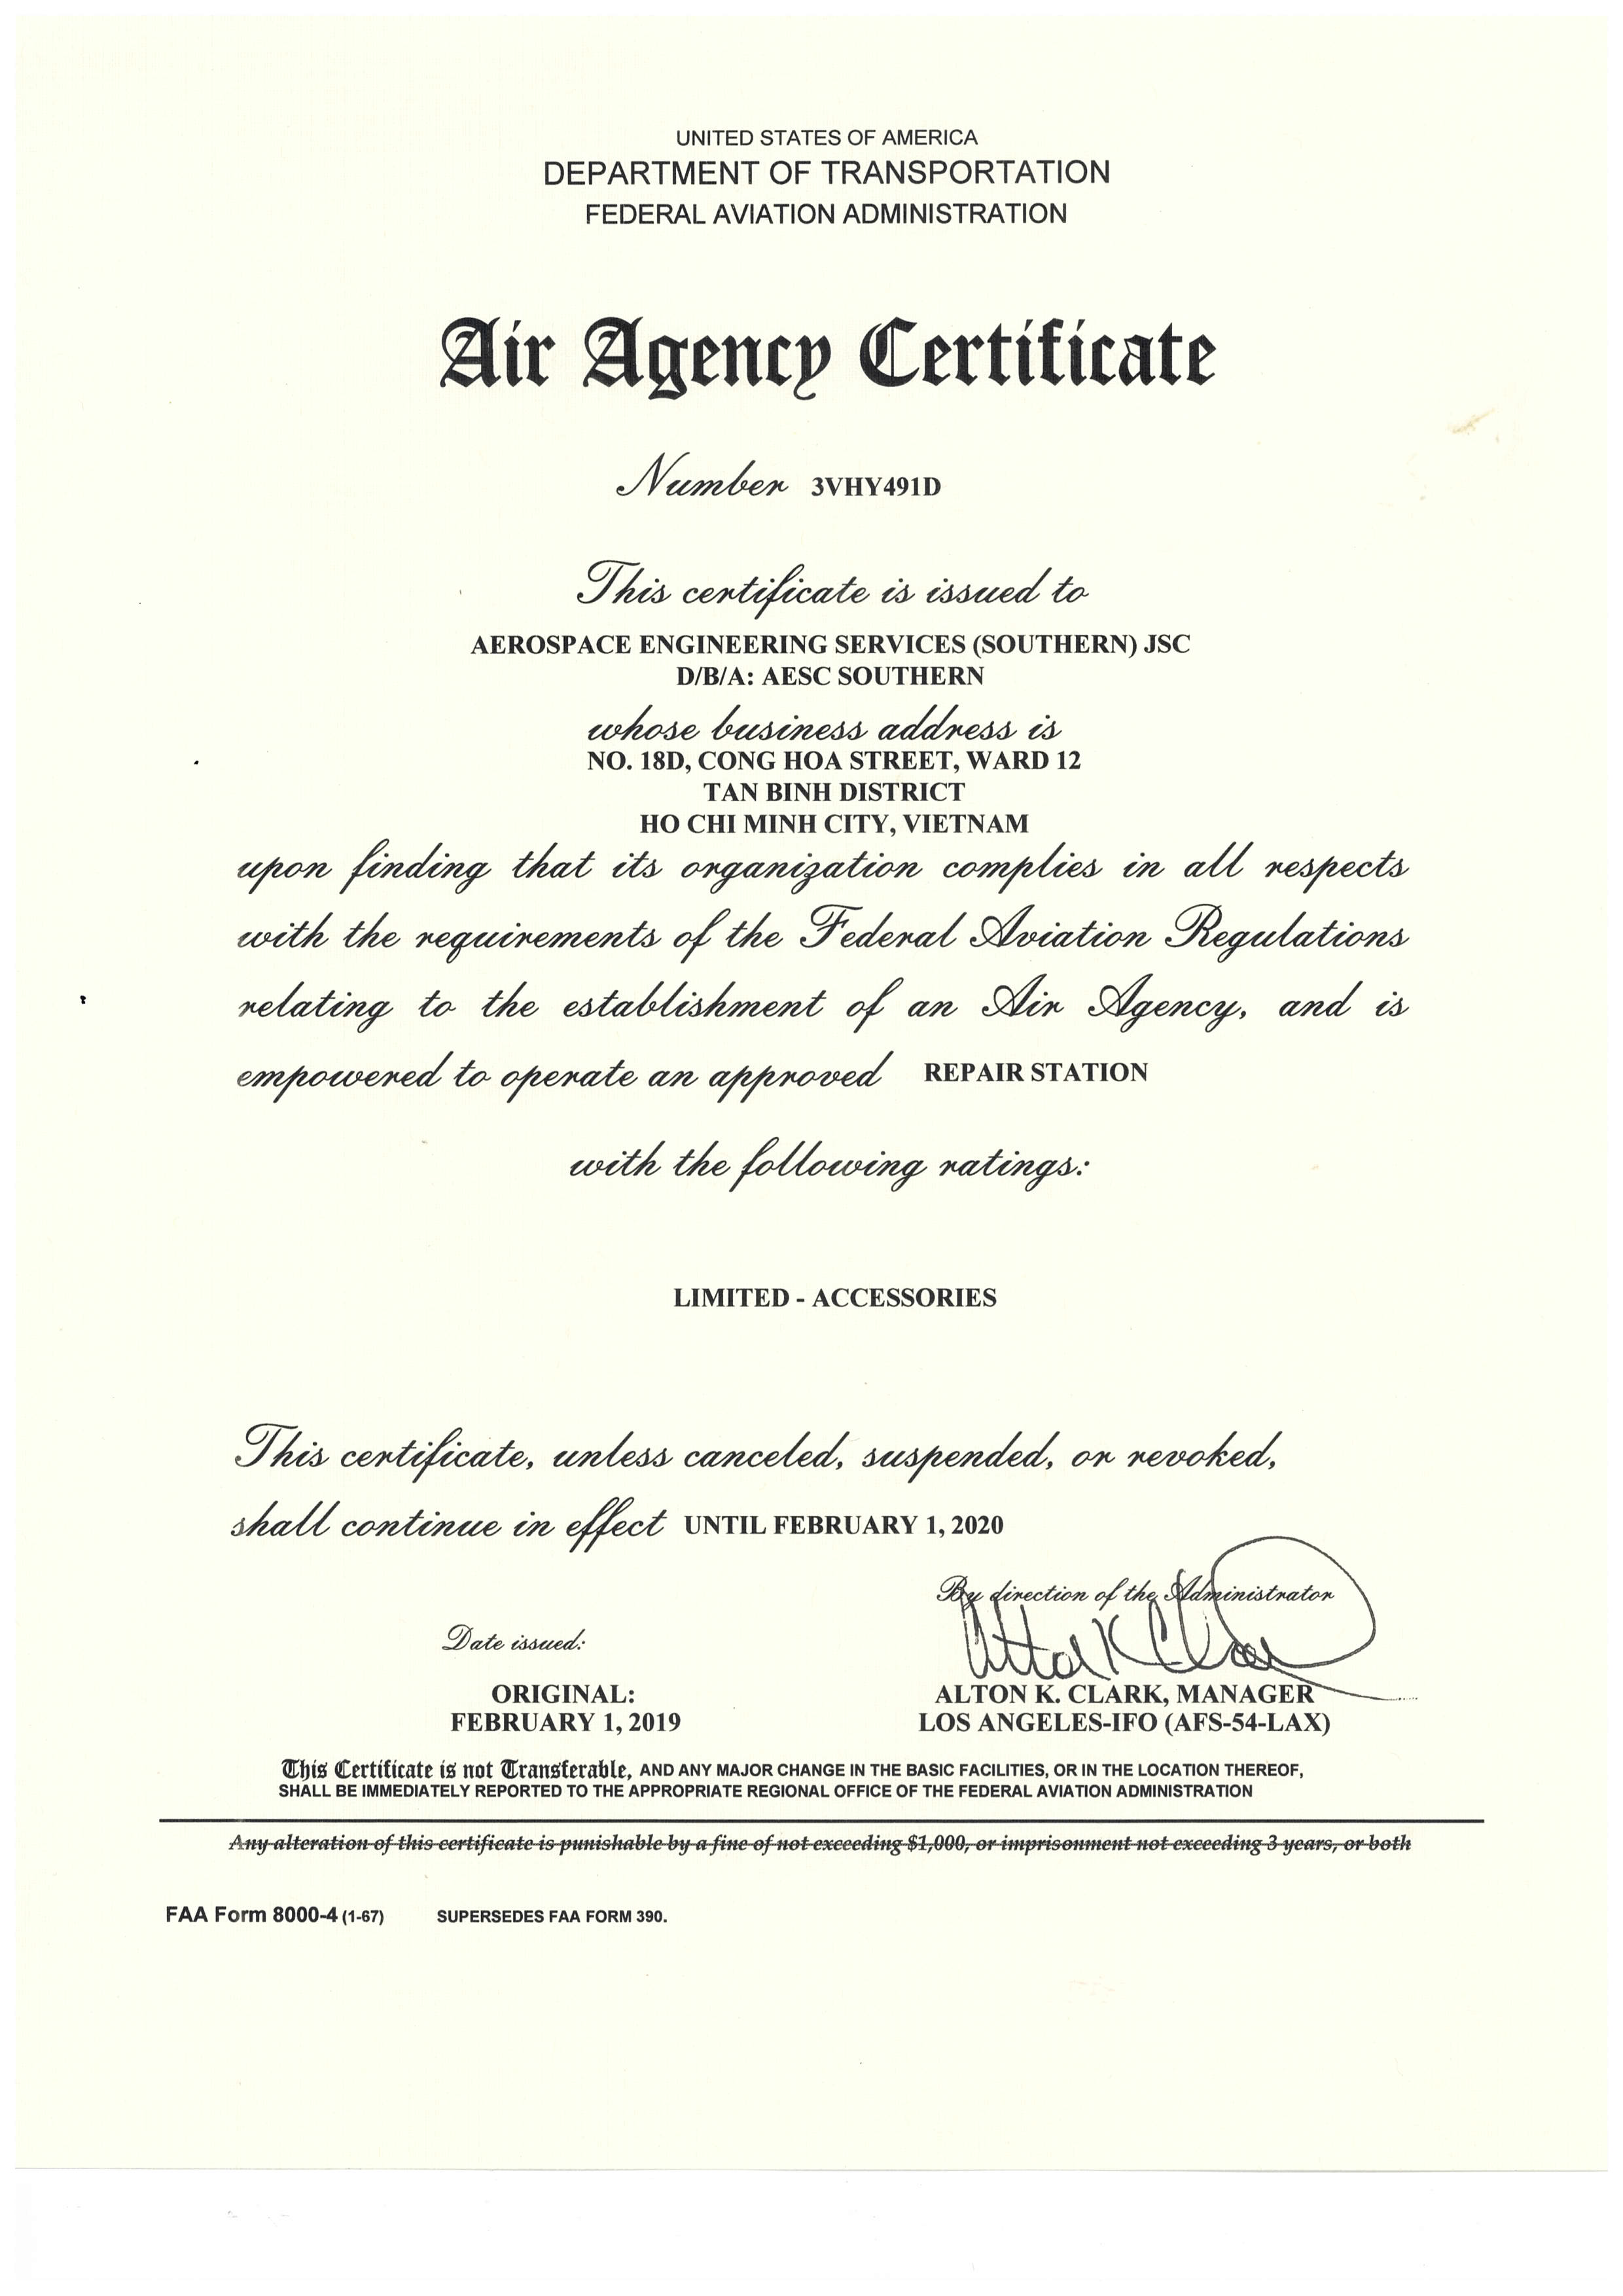 FAA Air Agency Certificate 3VHY491D